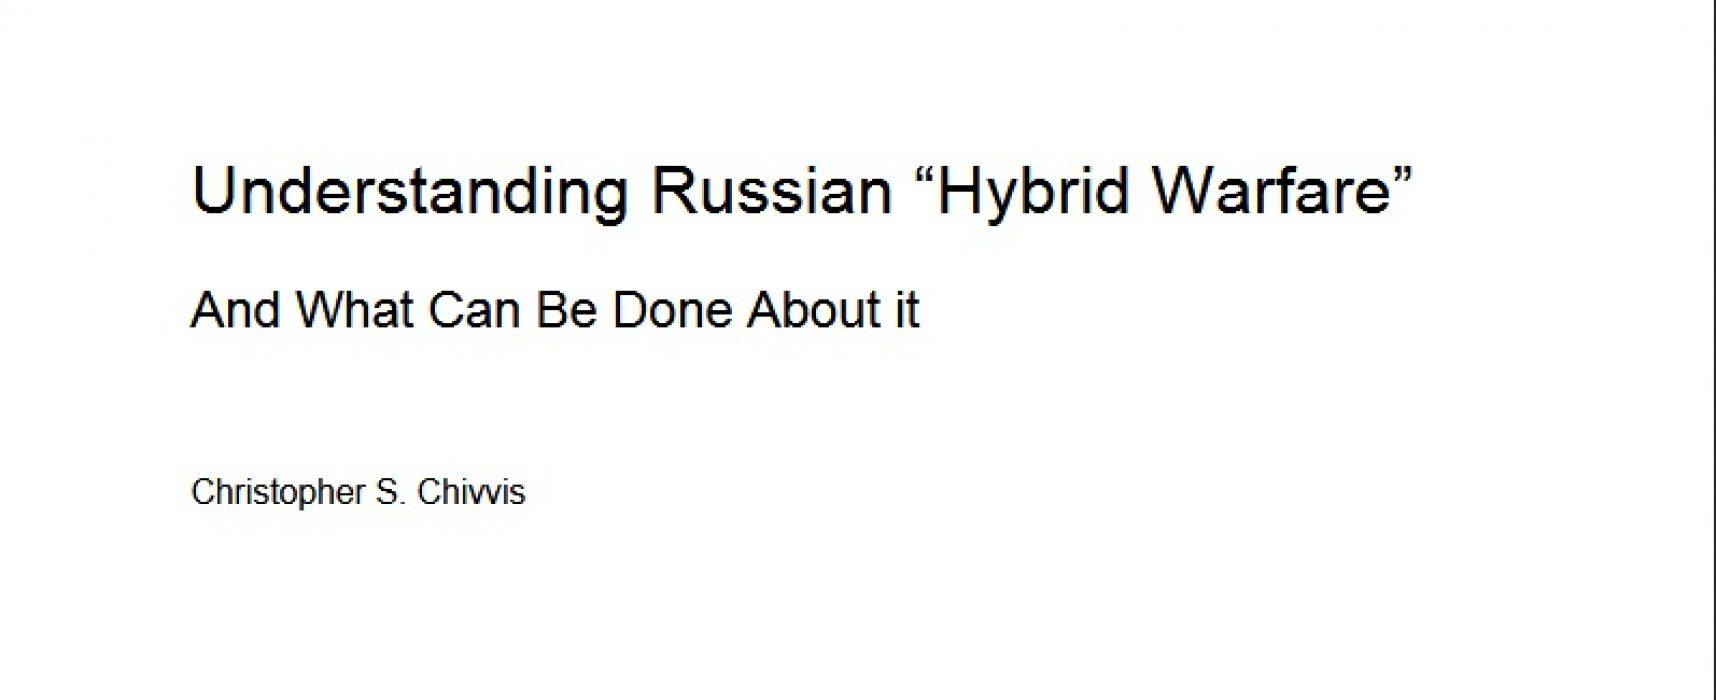 """Understanding Russian """"Hybrid Warfare"""" and what can be done about it"""